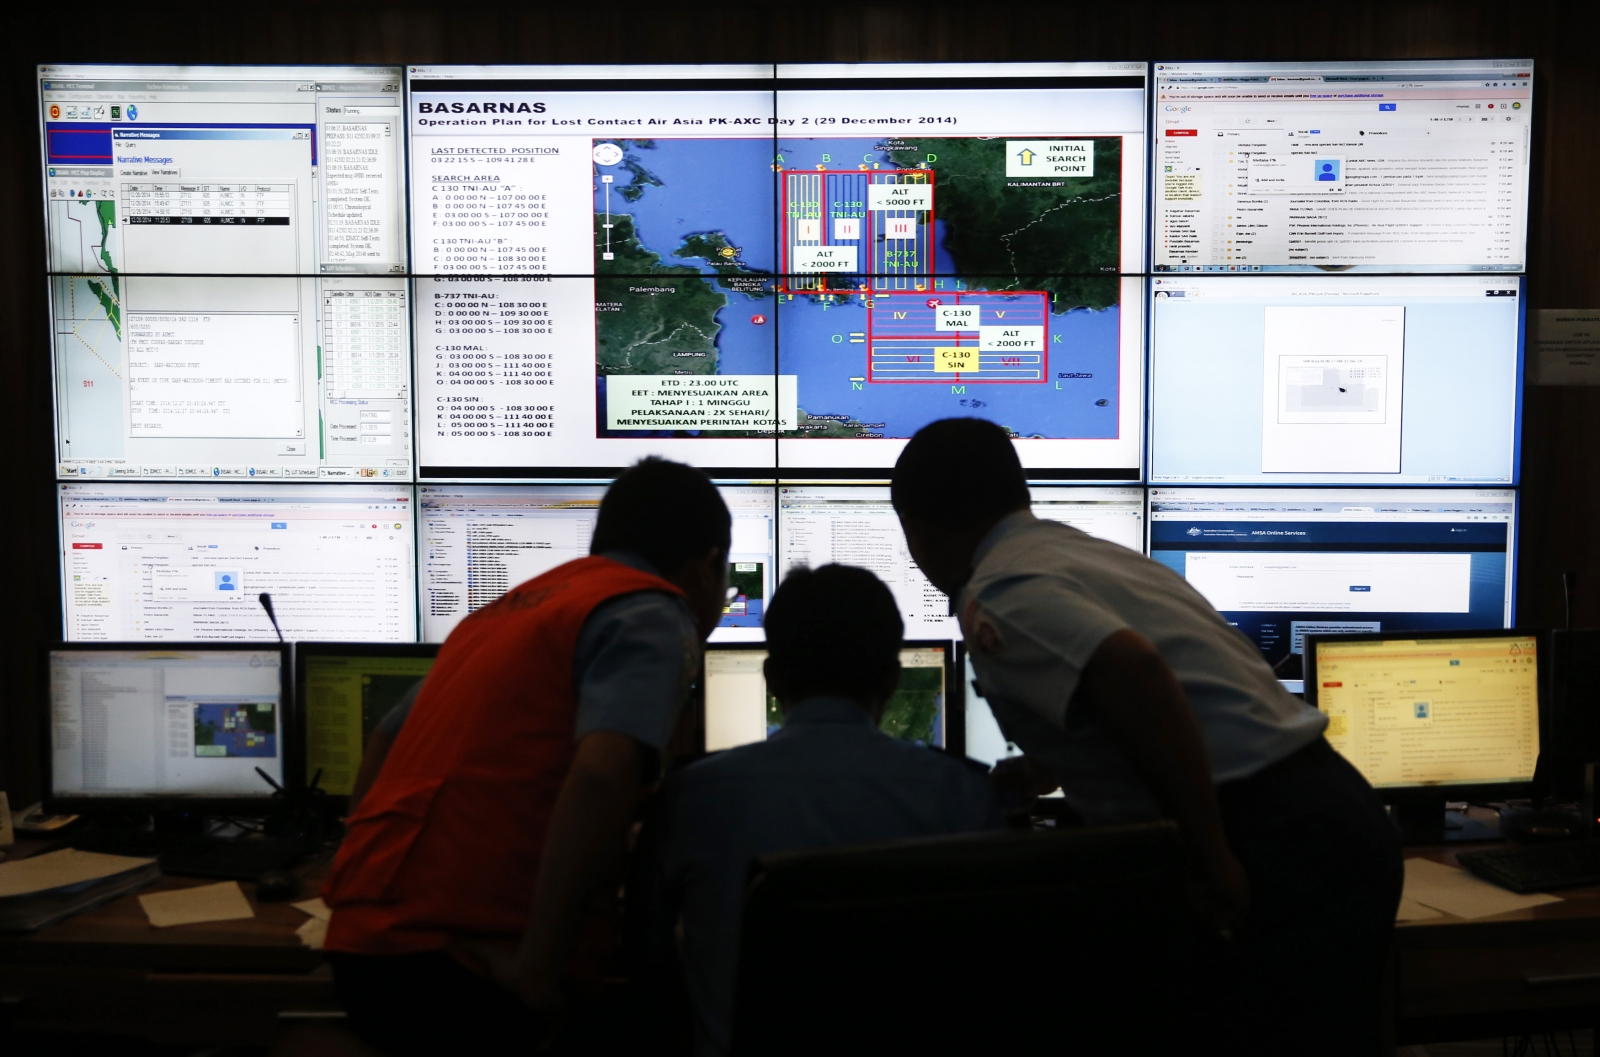 Authorities monitor progress in the search for AirAsia Flight QZ8501 in the Mission Control Center inside the National Search and Rescue Agency in Jakarta